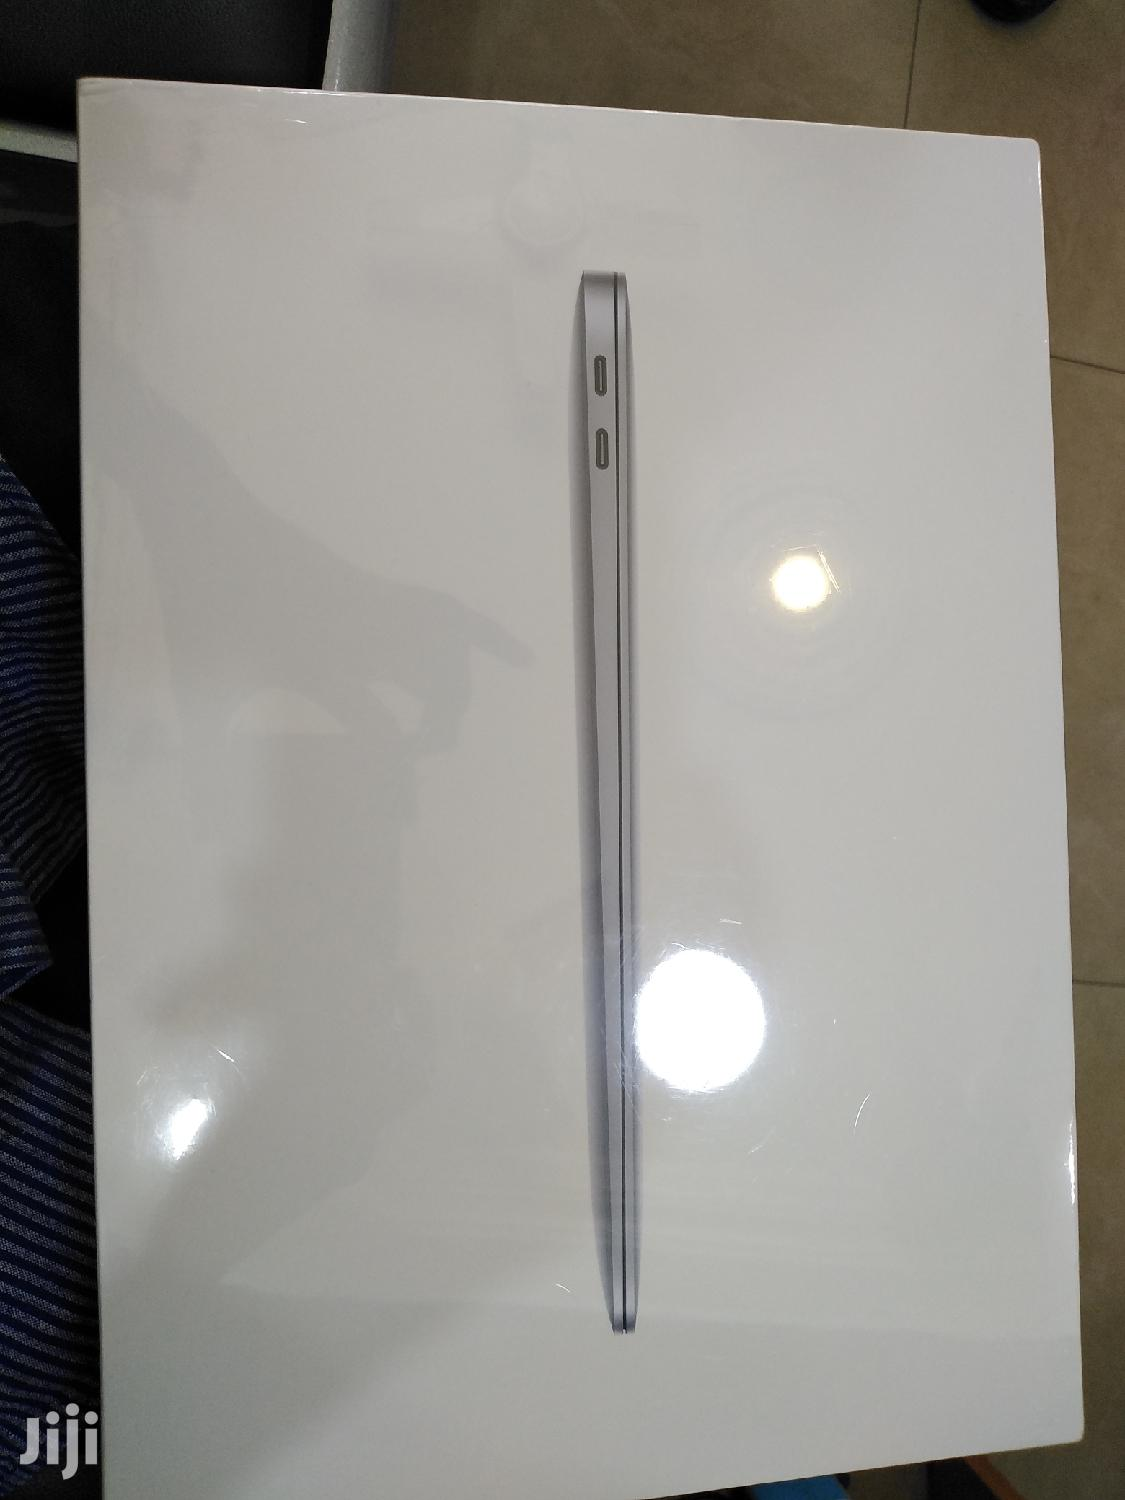 New Laptop Apple MacBook Air 8GB Intel Core i3 SSD 256GB | Laptops & Computers for sale in Adabraka, Greater Accra, Ghana